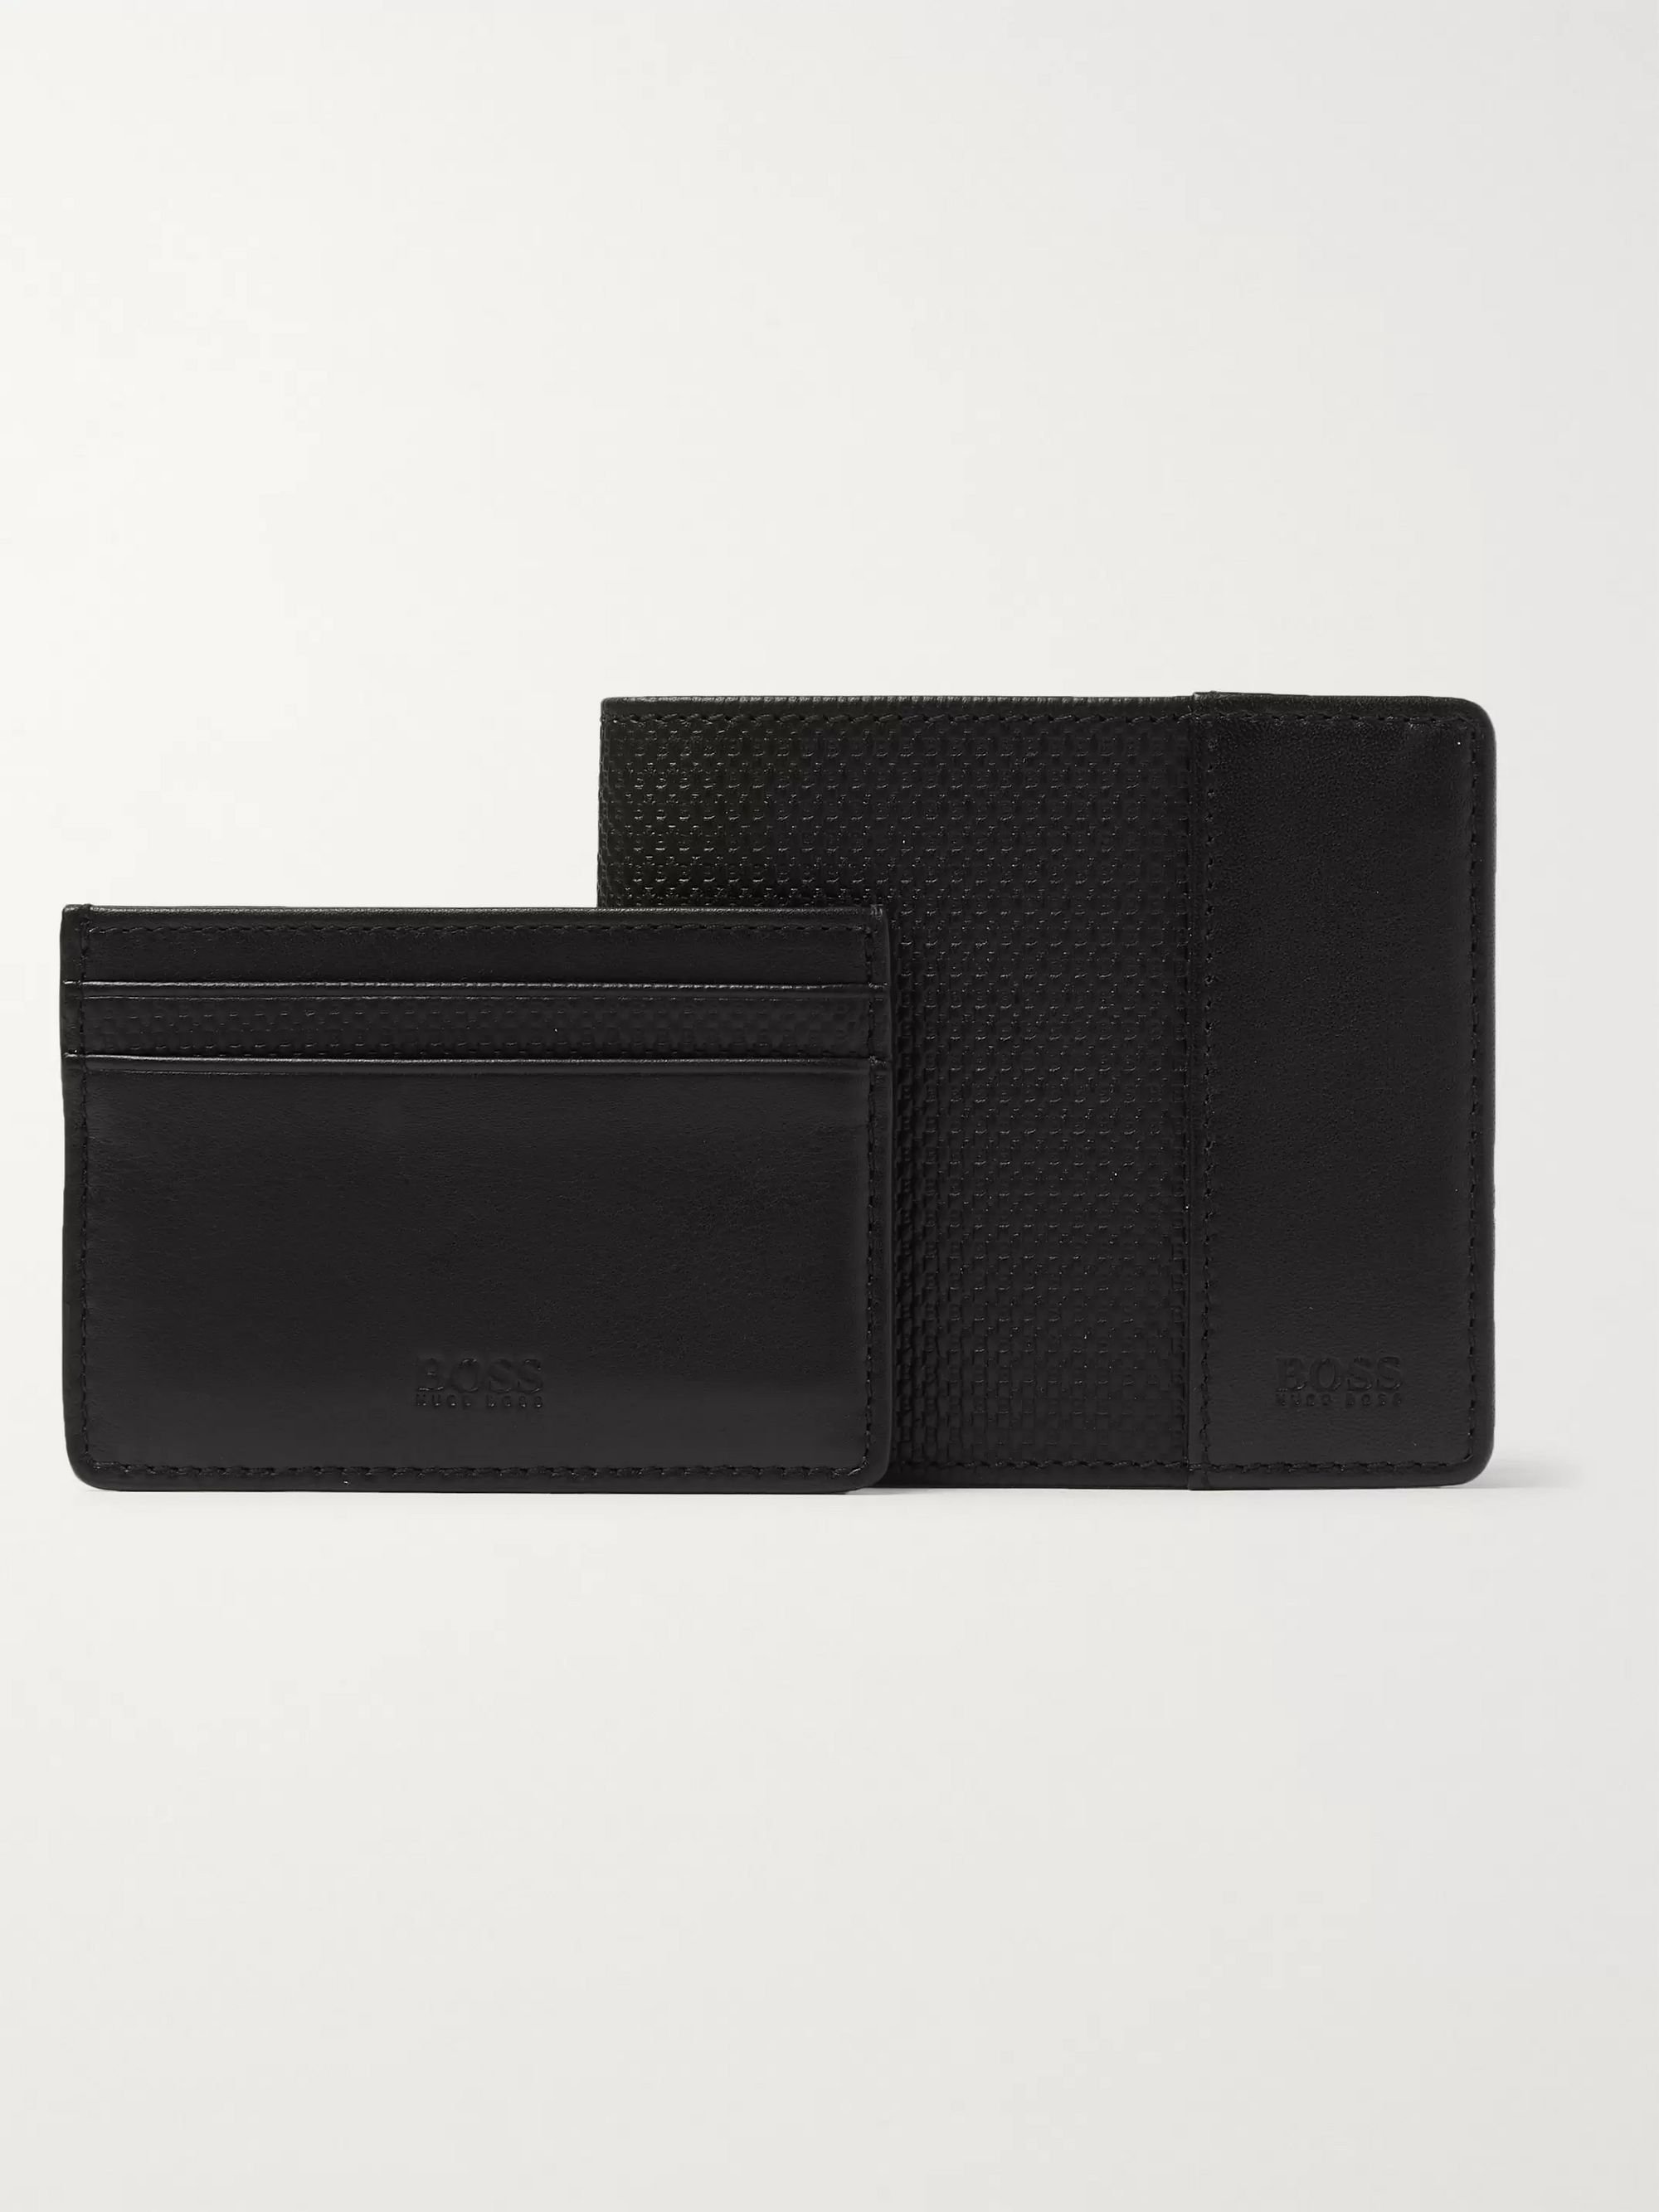 Hugo Boss Textured-Leather Billfold Wallet and Cardholder Set